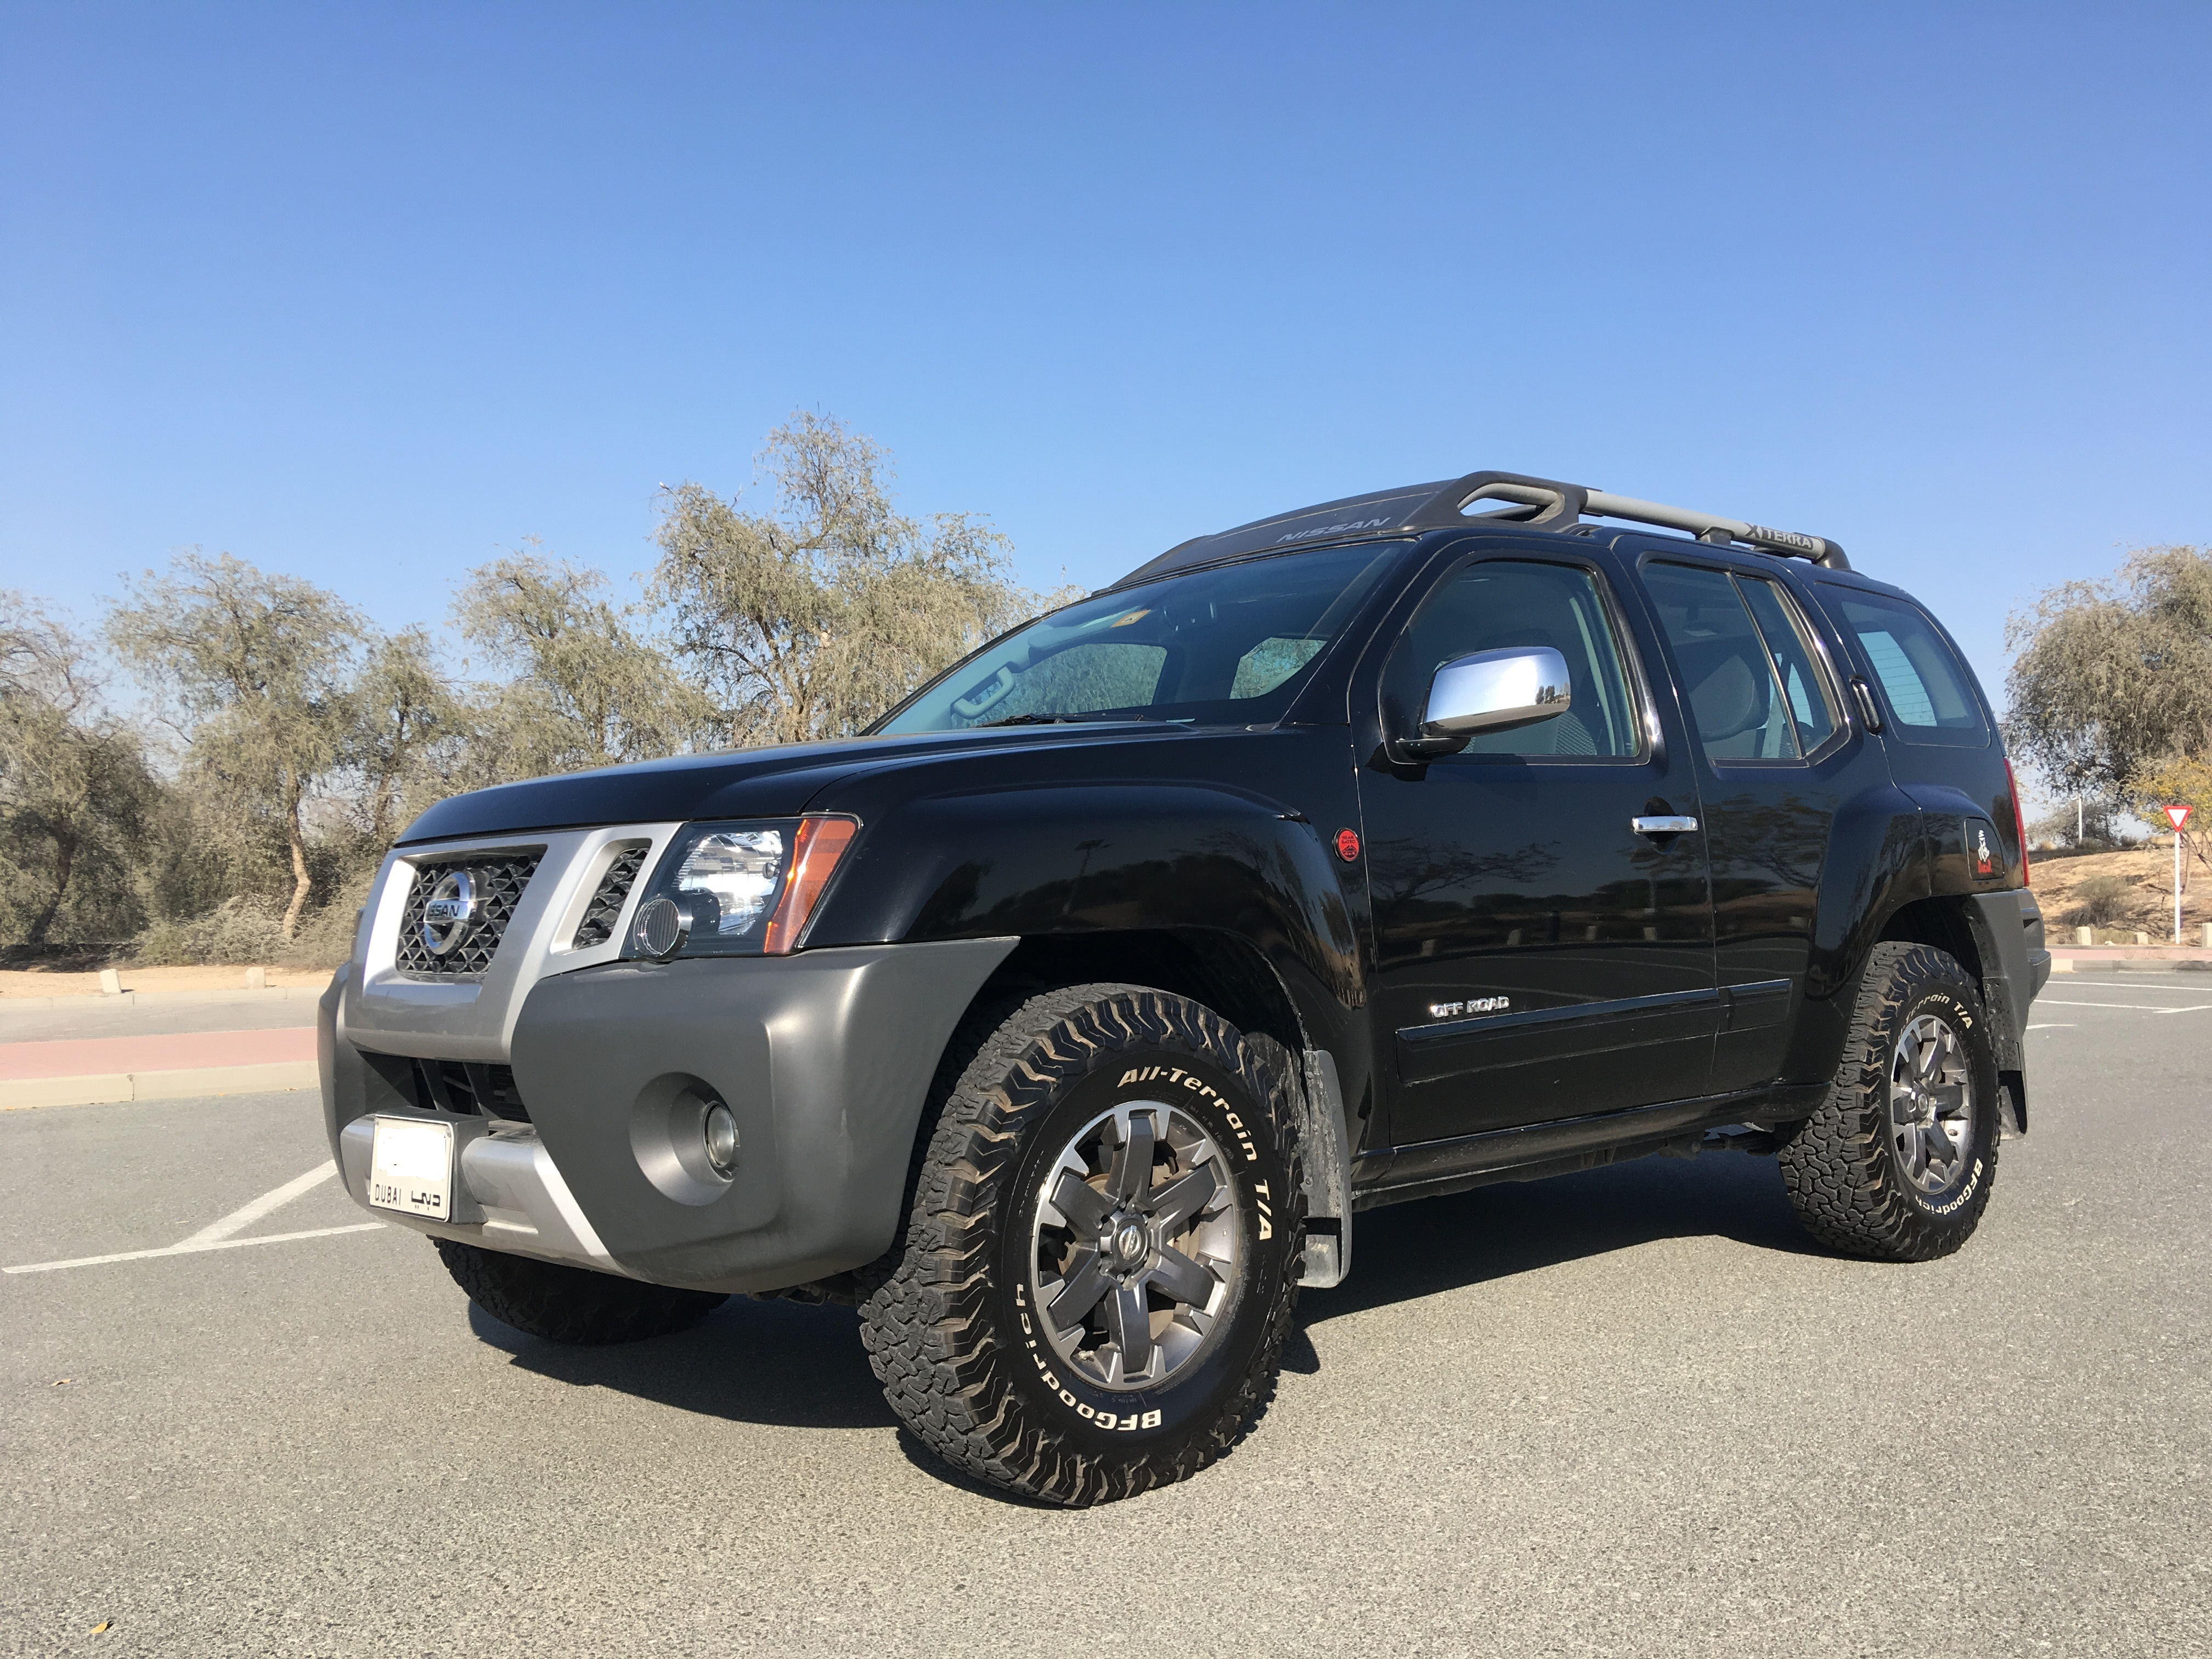 glacier composite suv nissan large research xterra white s x groovecar